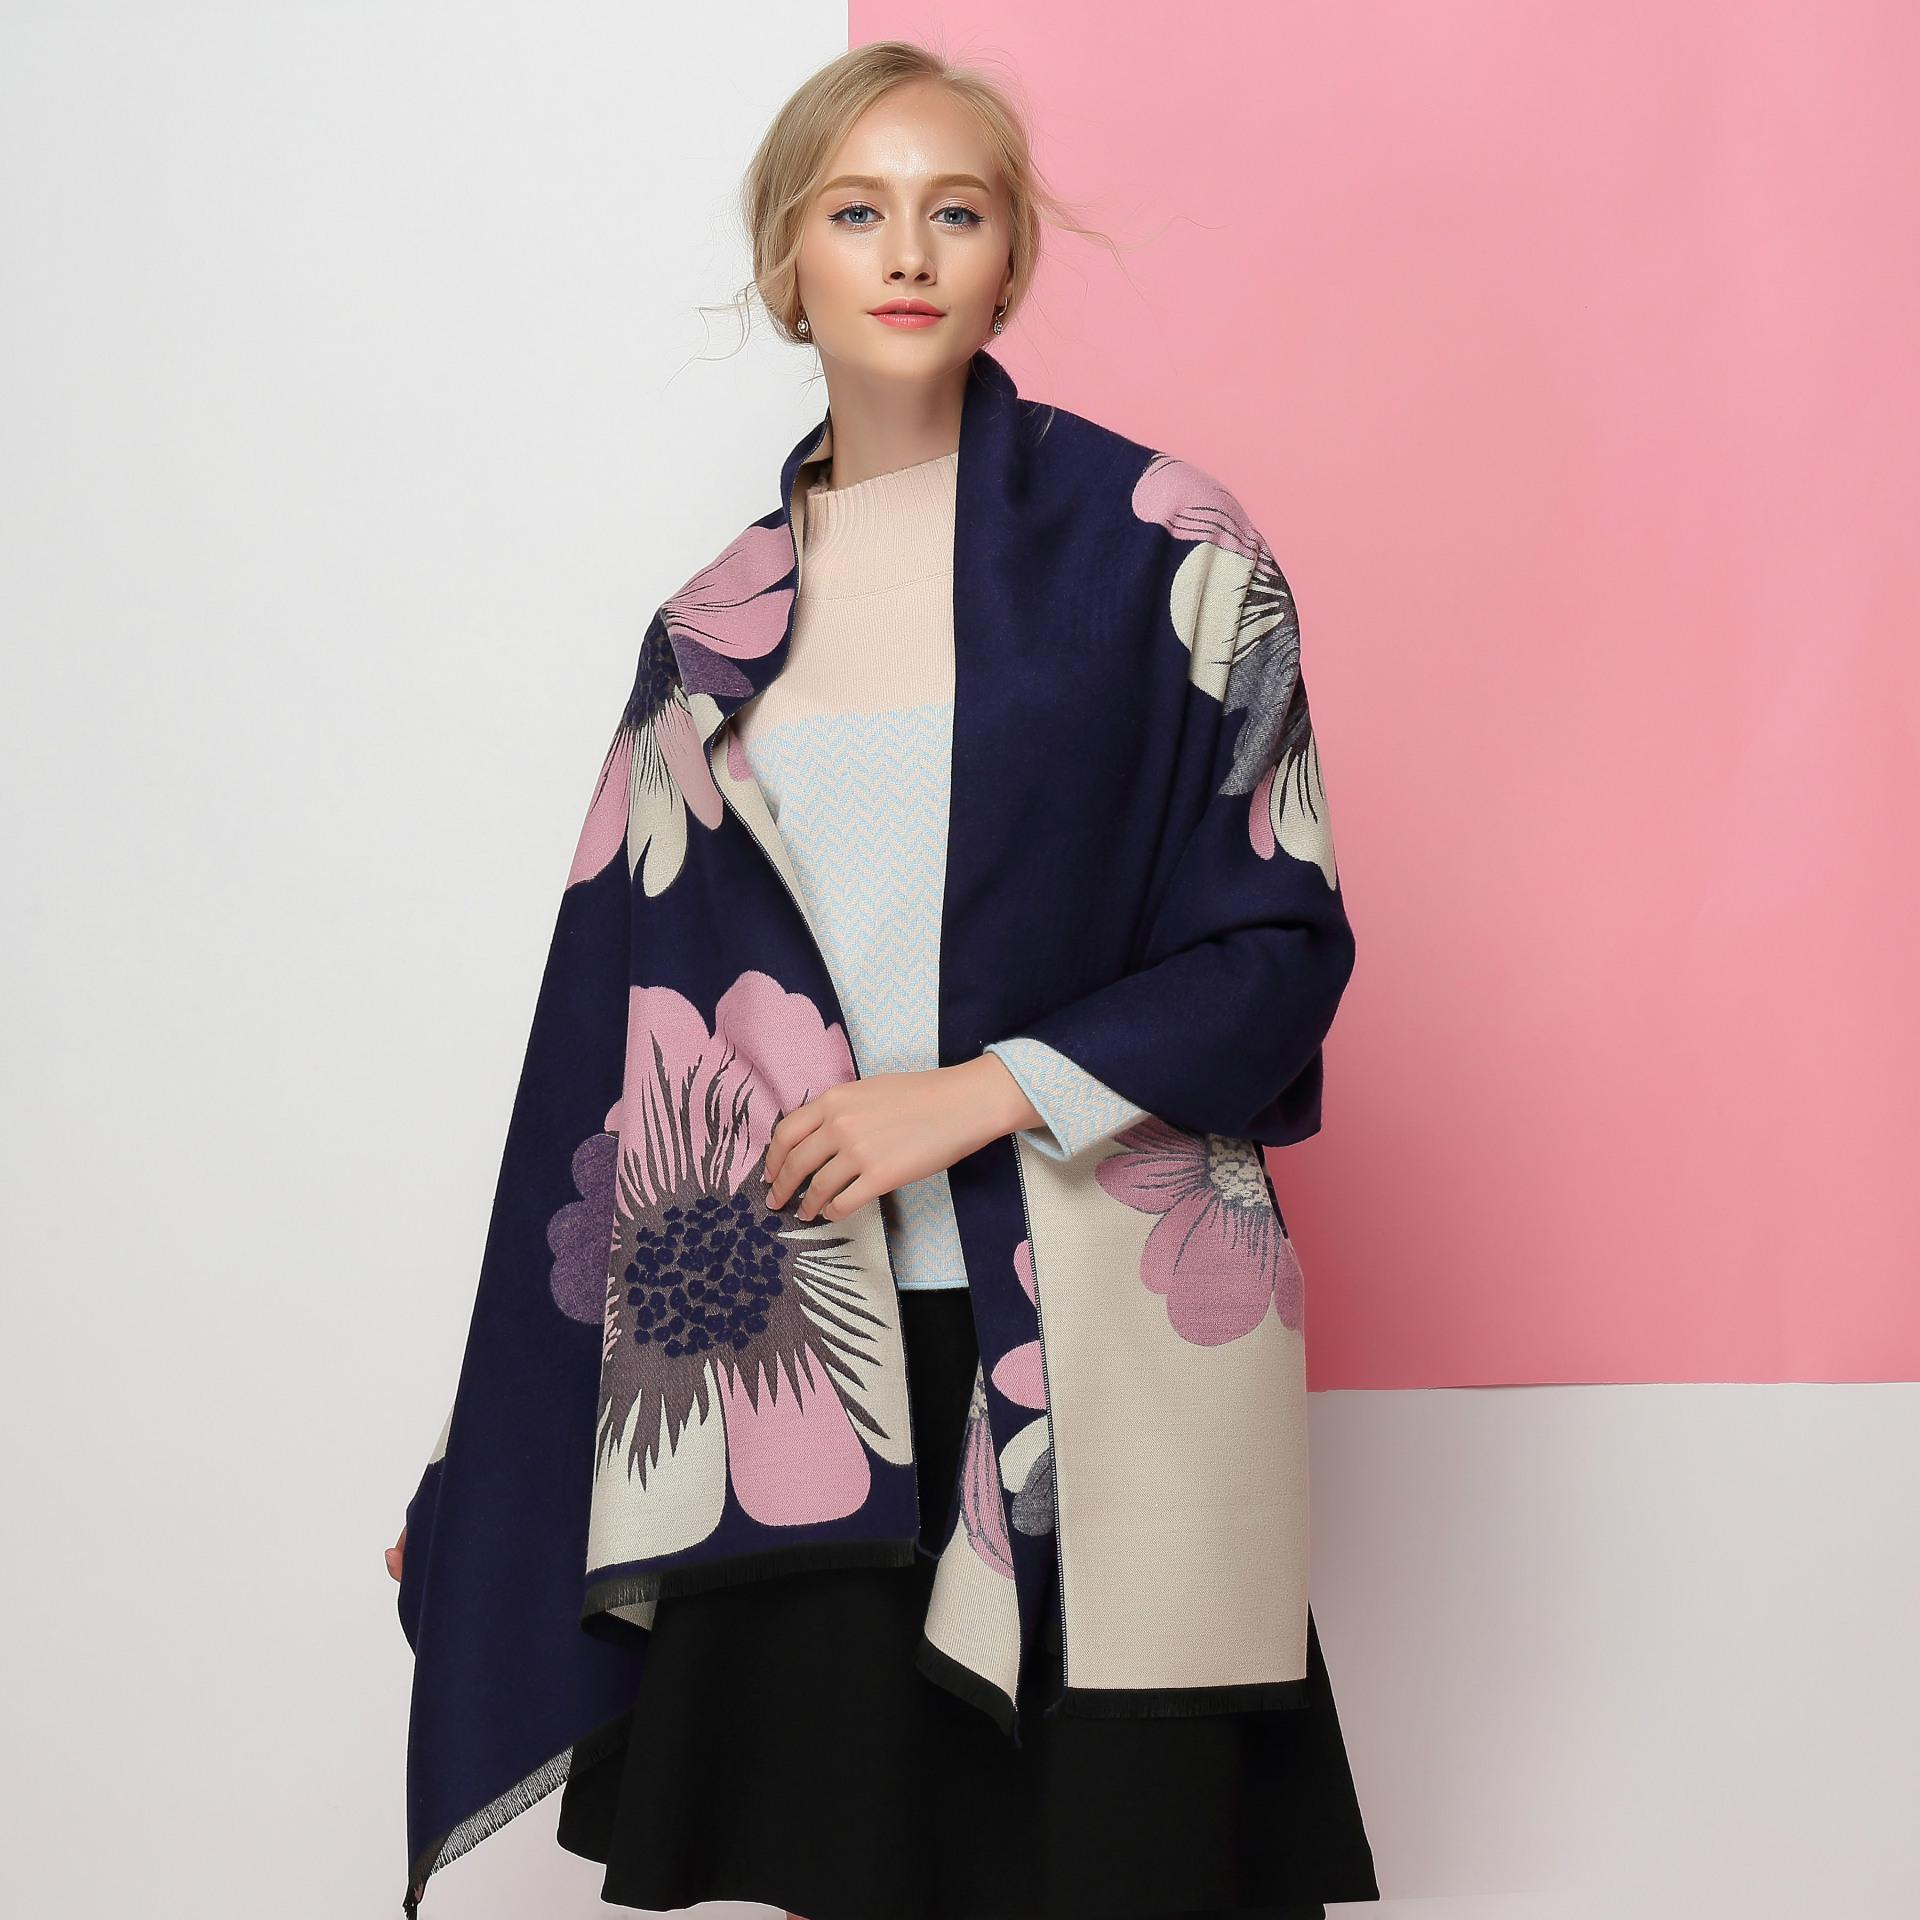 2019 New autumn and winter women's high-end gift neck double sided fashion warm shawl thick large flower designer scarf